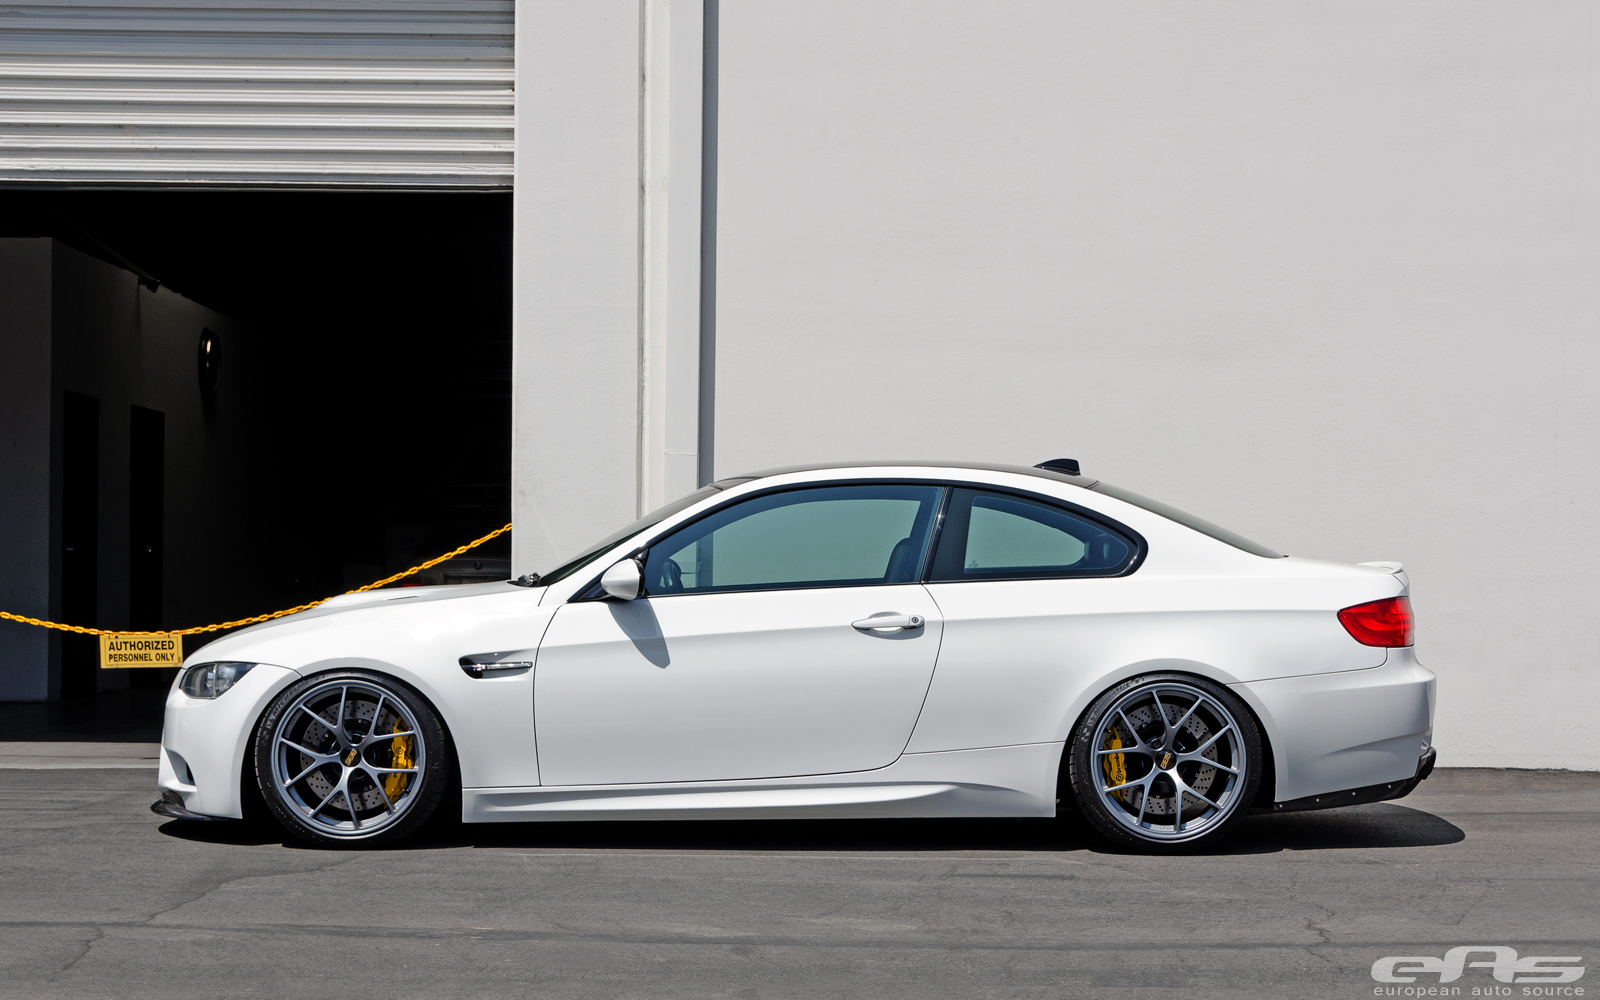 alpine white bmw e92 m3 gets slammed at eas autoevolution. Black Bedroom Furniture Sets. Home Design Ideas